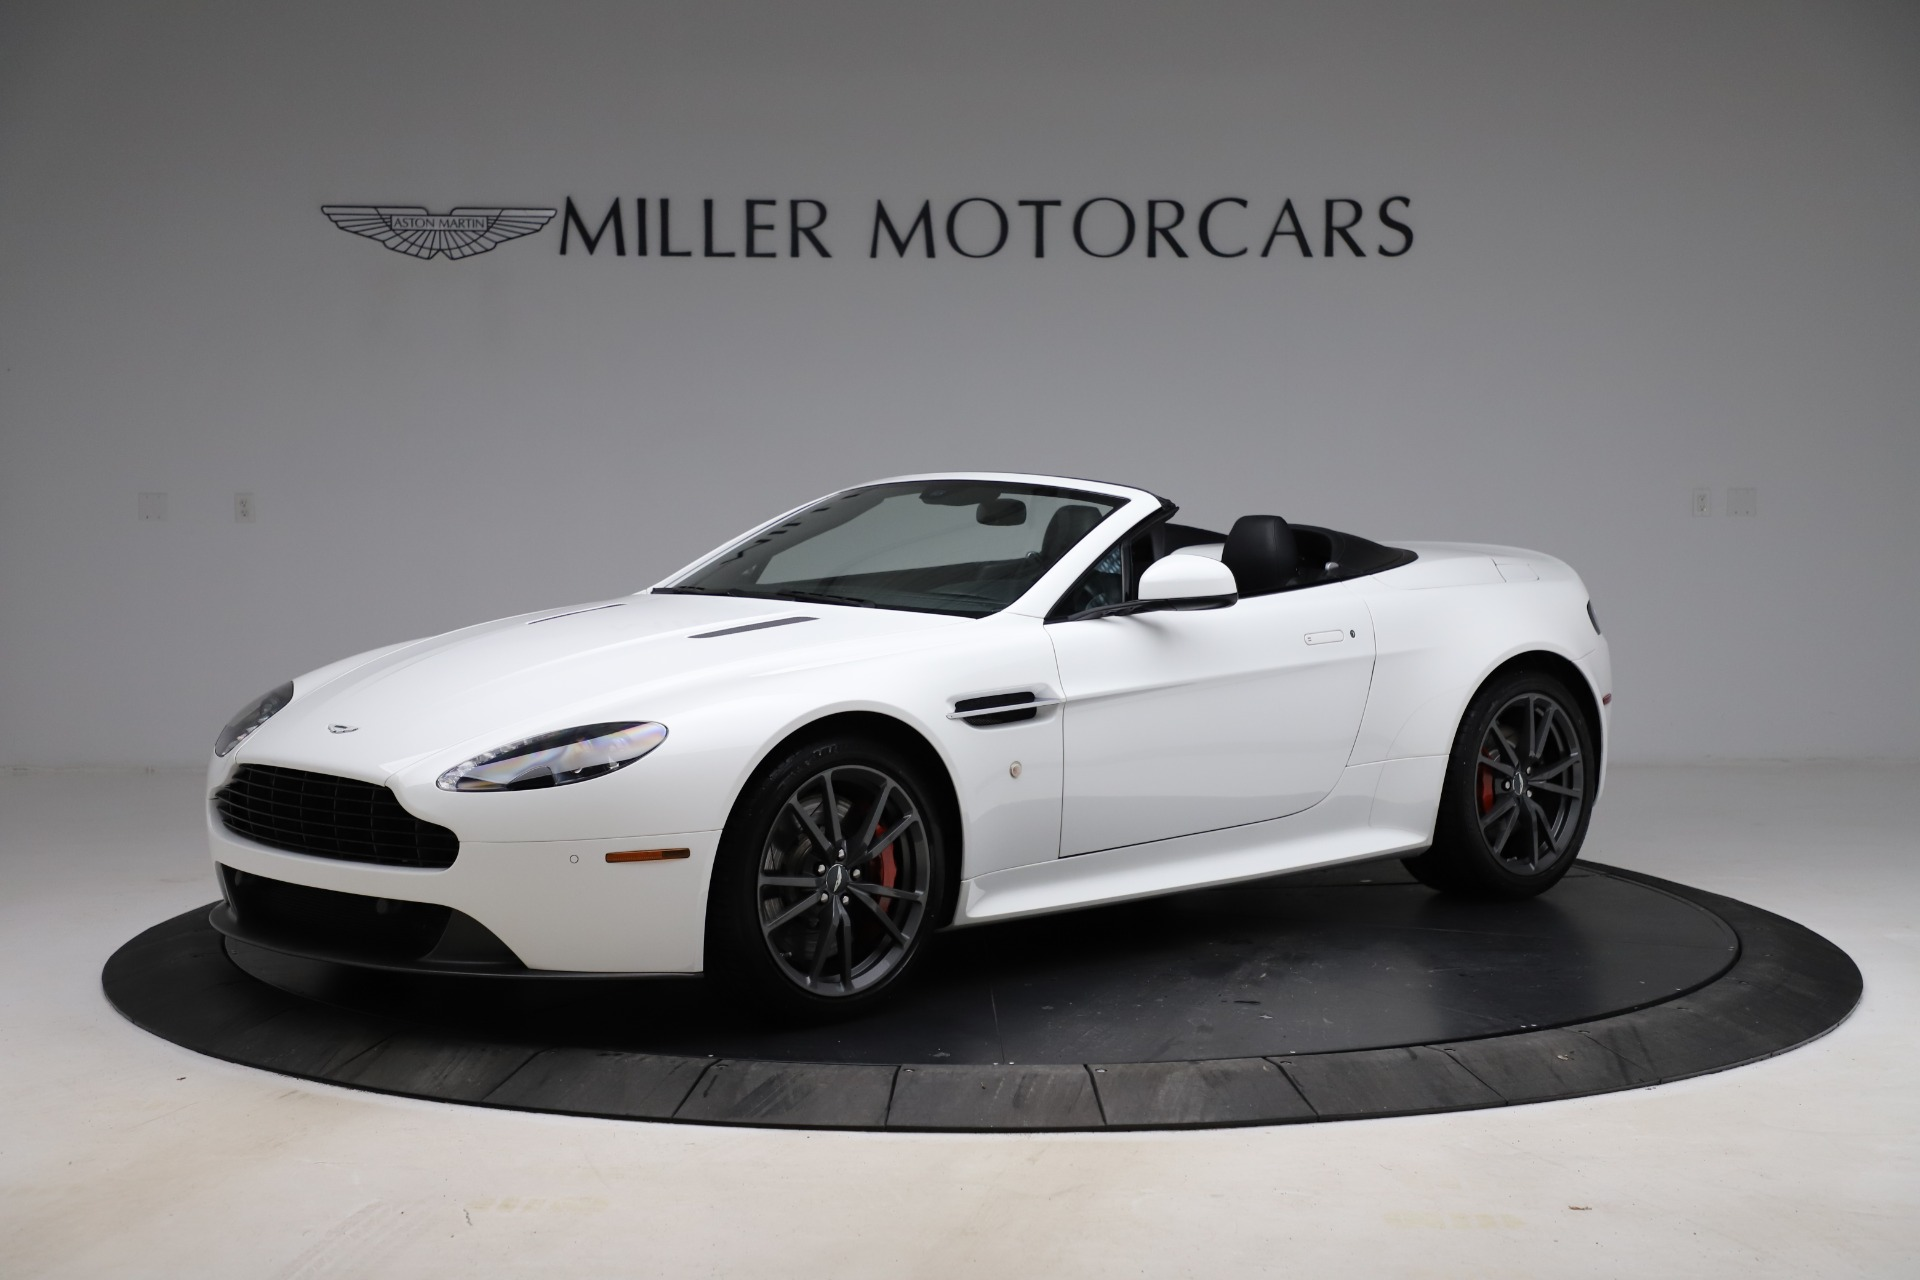 2015 Aston Martin Vantage Gt Gt Roadster Stock A1133 For Sale Near